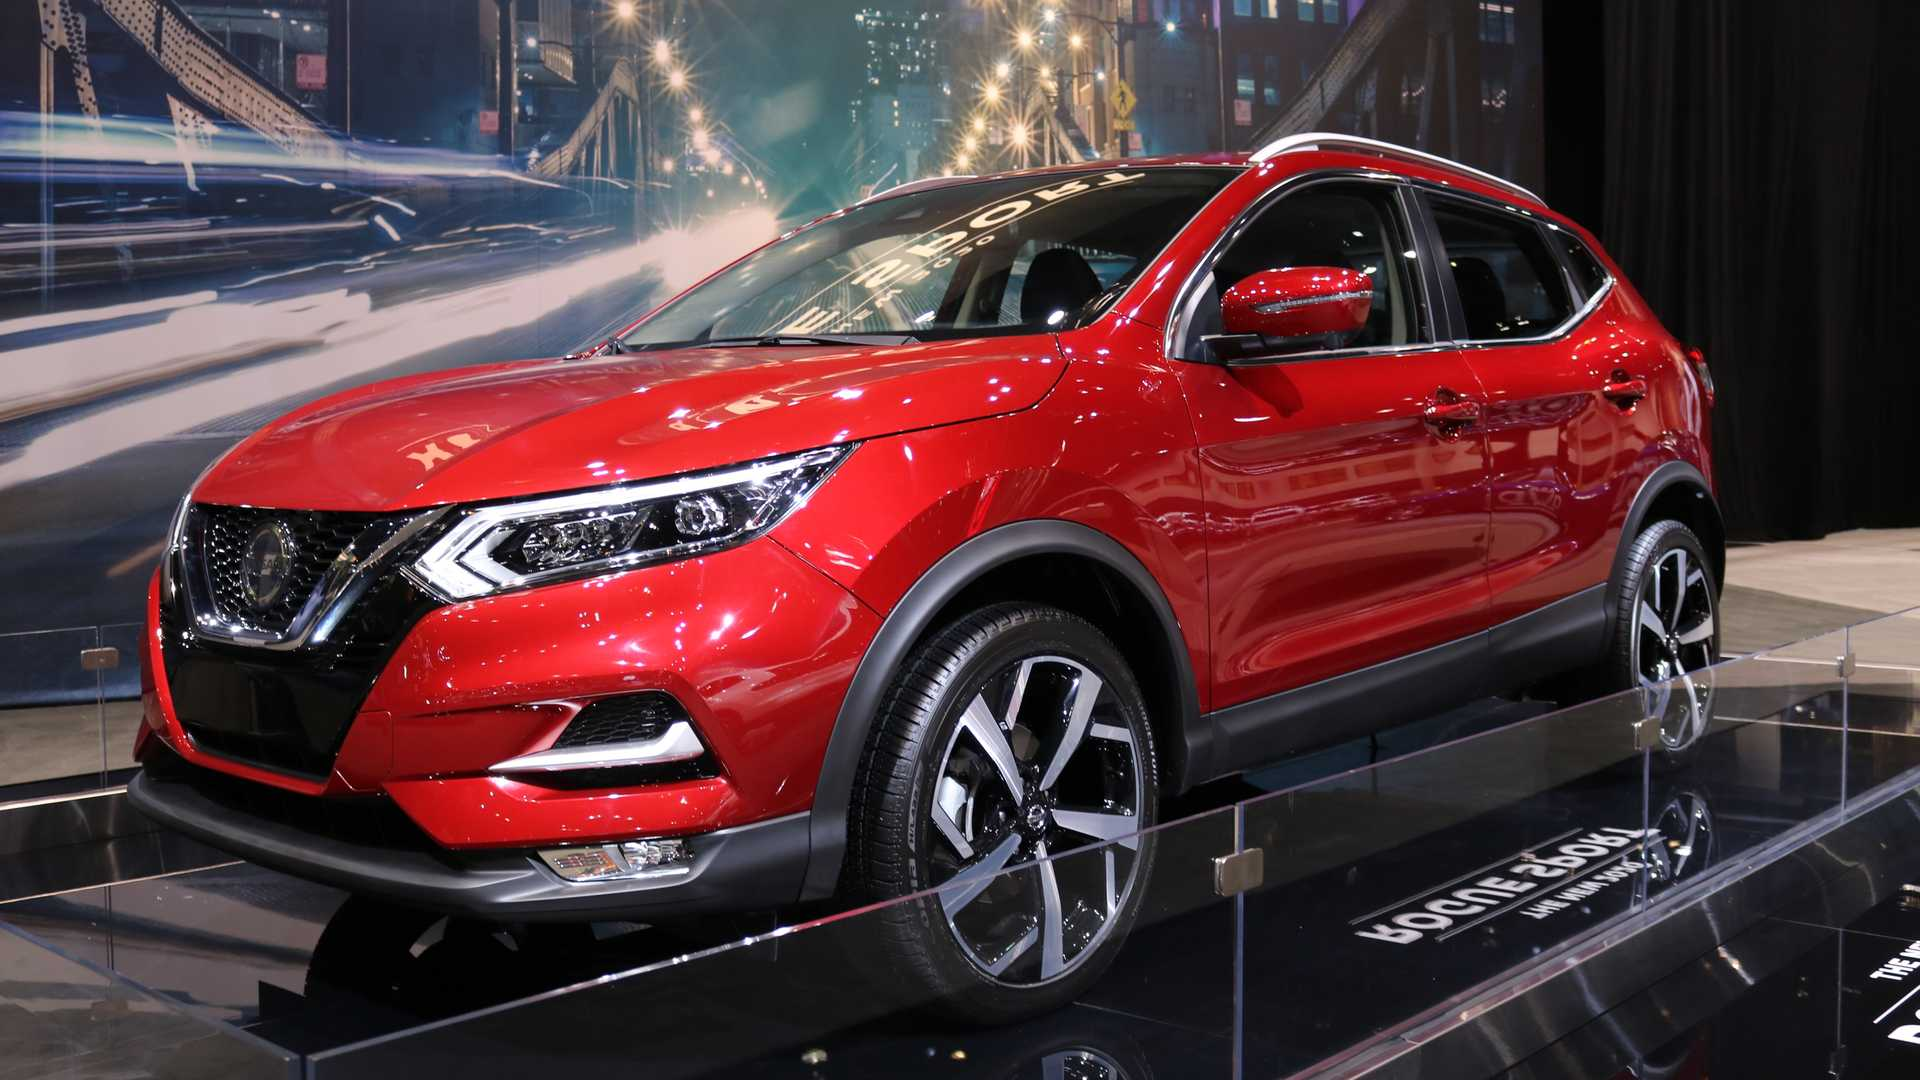 83 Best When Will The 2020 Nissan Rogue Be Released Price And Release Date